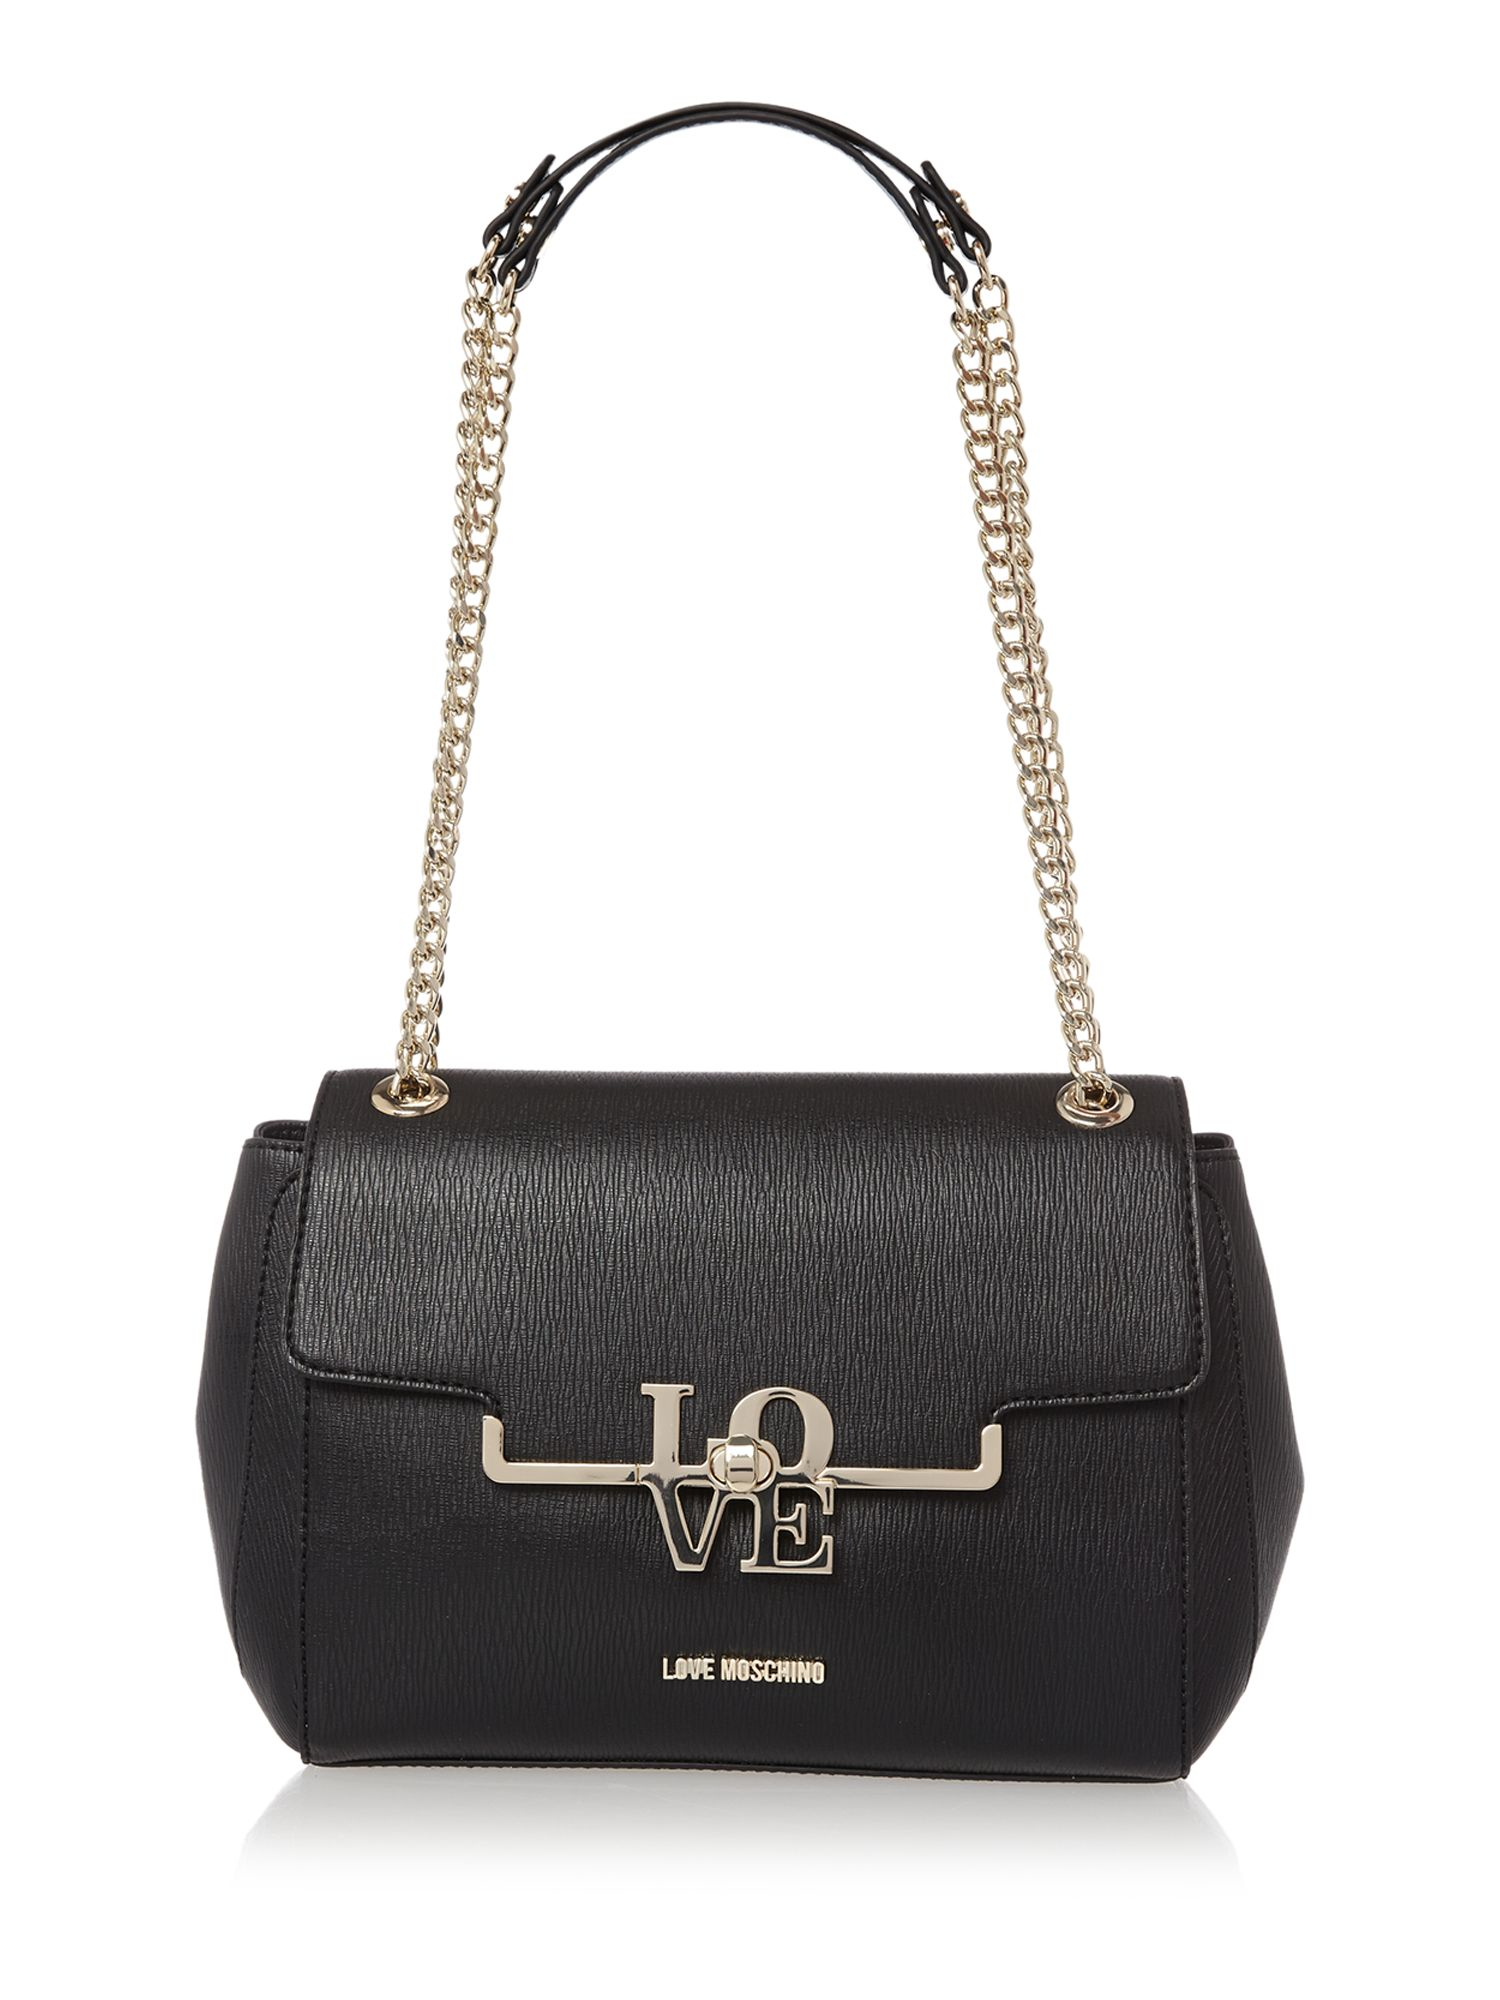 love moschino frame saffiano black chain shoulder bag in black lyst. Black Bedroom Furniture Sets. Home Design Ideas